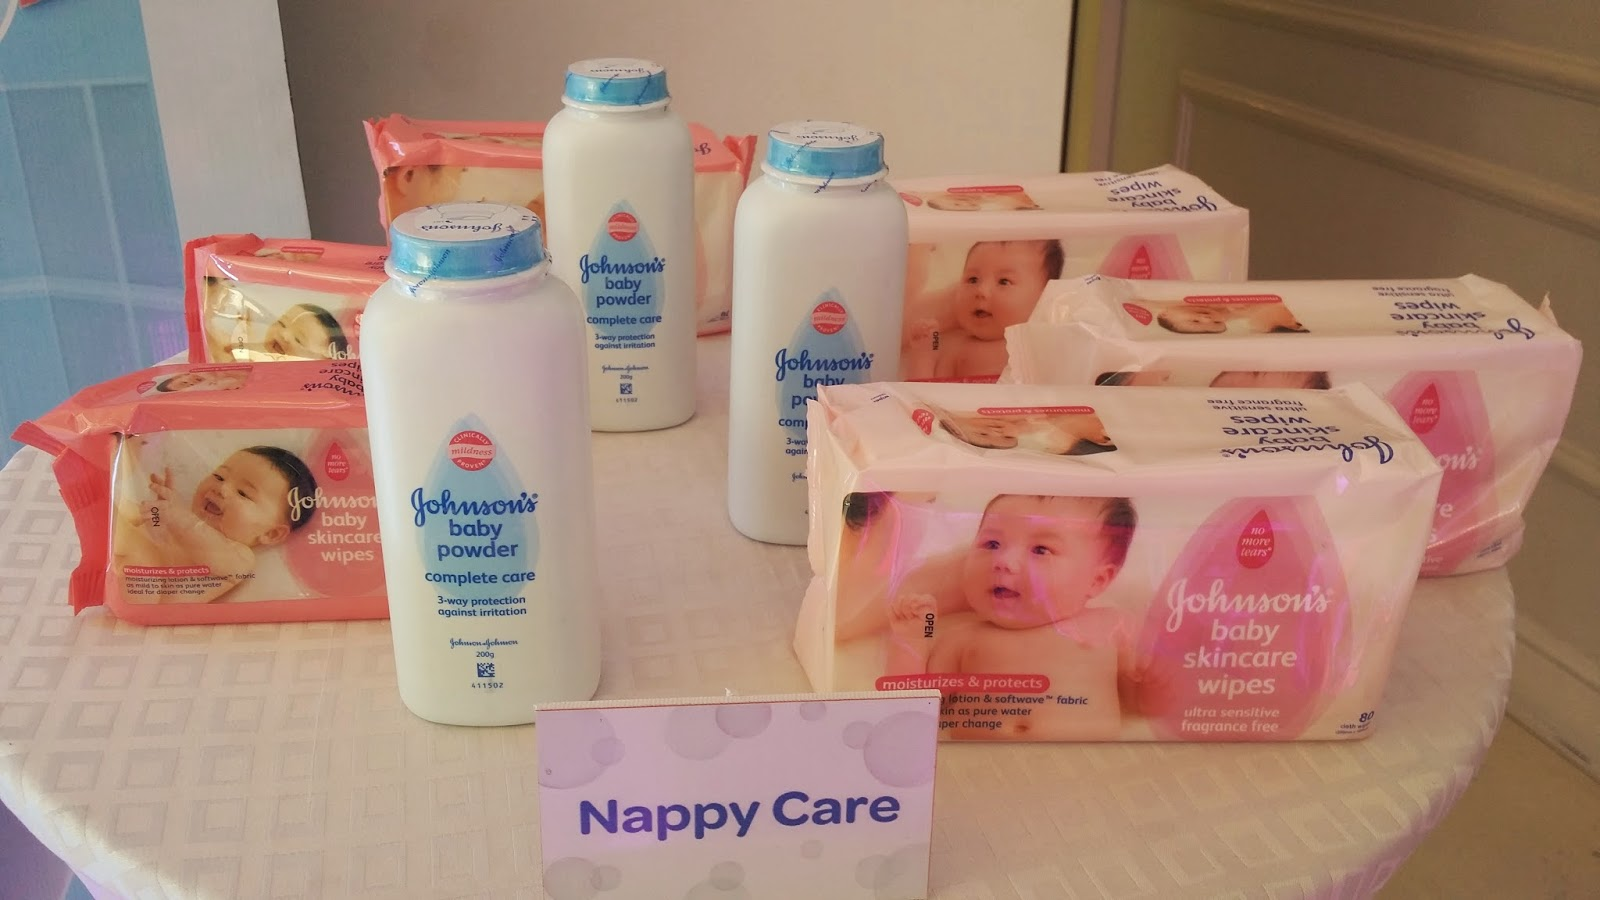 Johnson Johnson Baby Products Products Form Johnson's® That